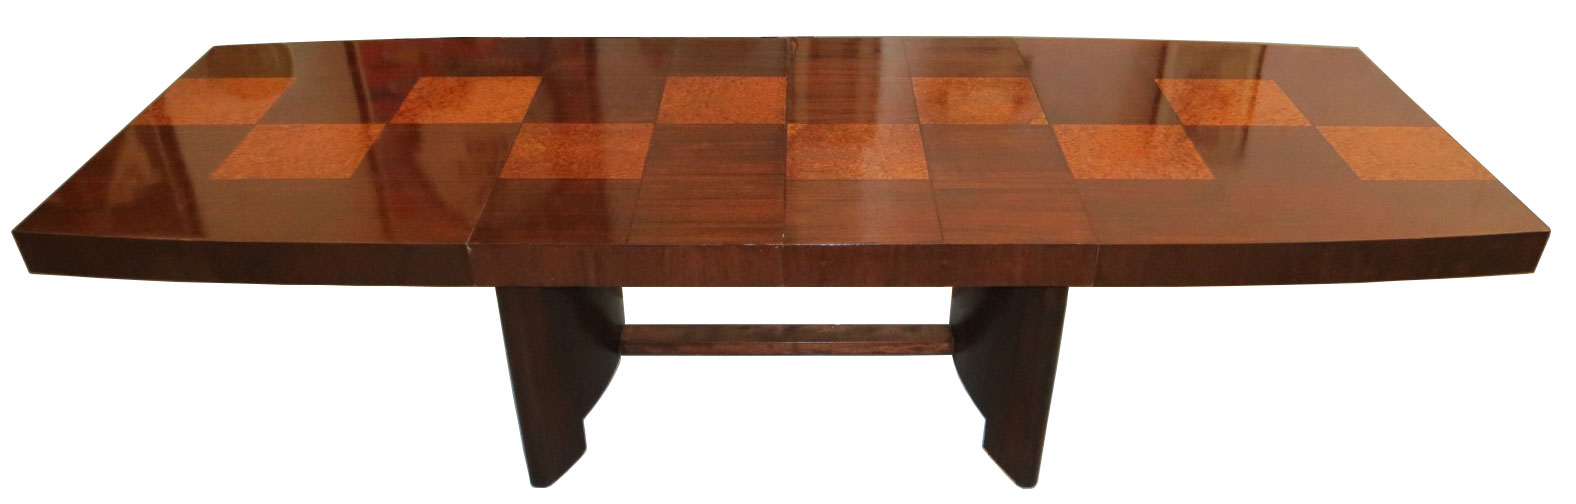 Gilbert rohde art deco dining table for herman miller